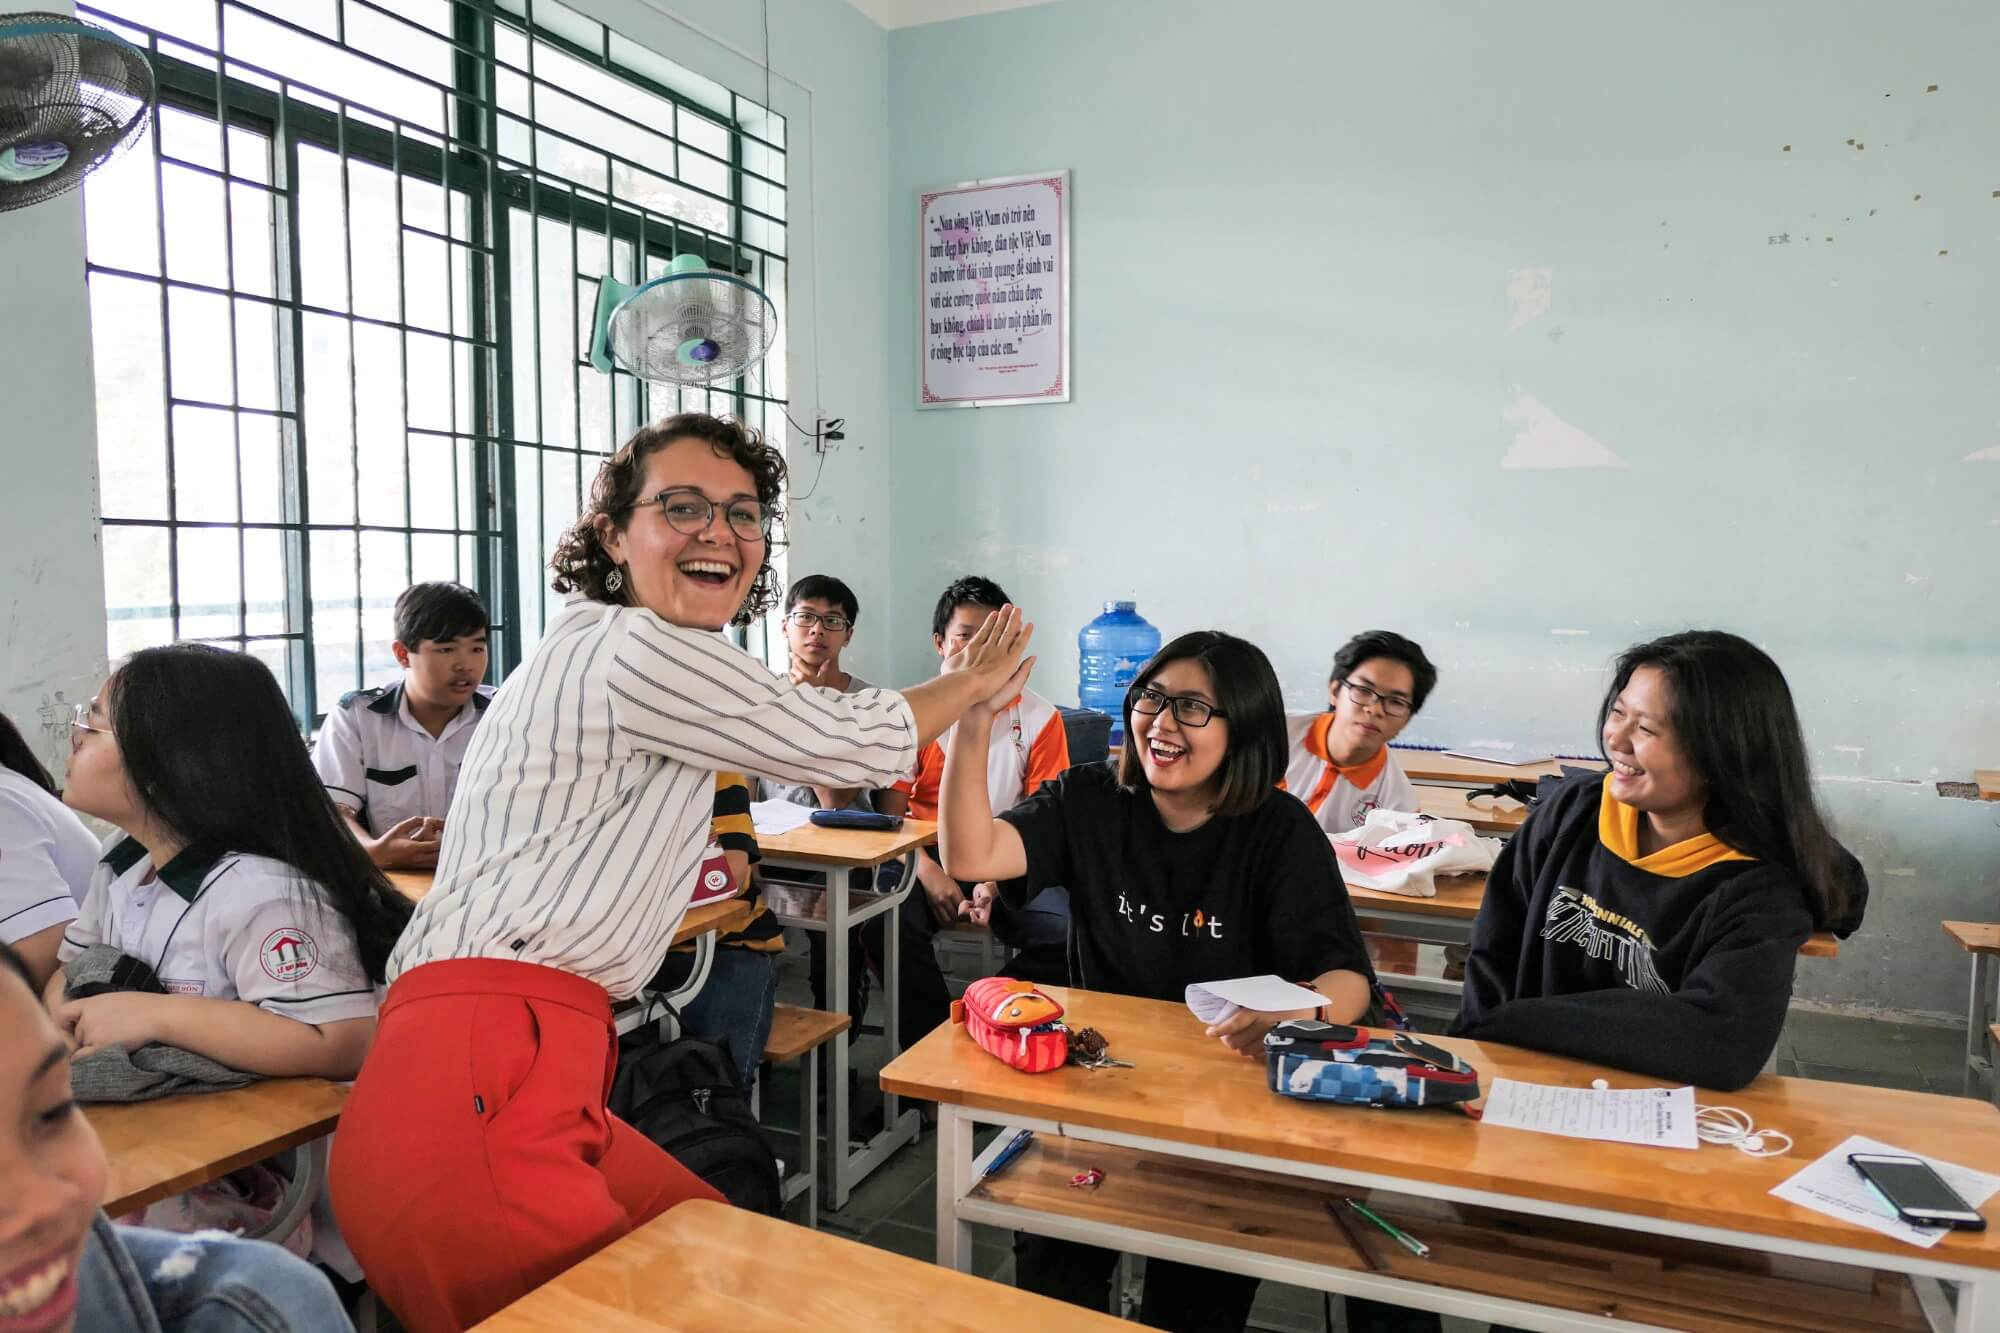 Chelsea Maupin high fives a student in a Vietnamese classroom